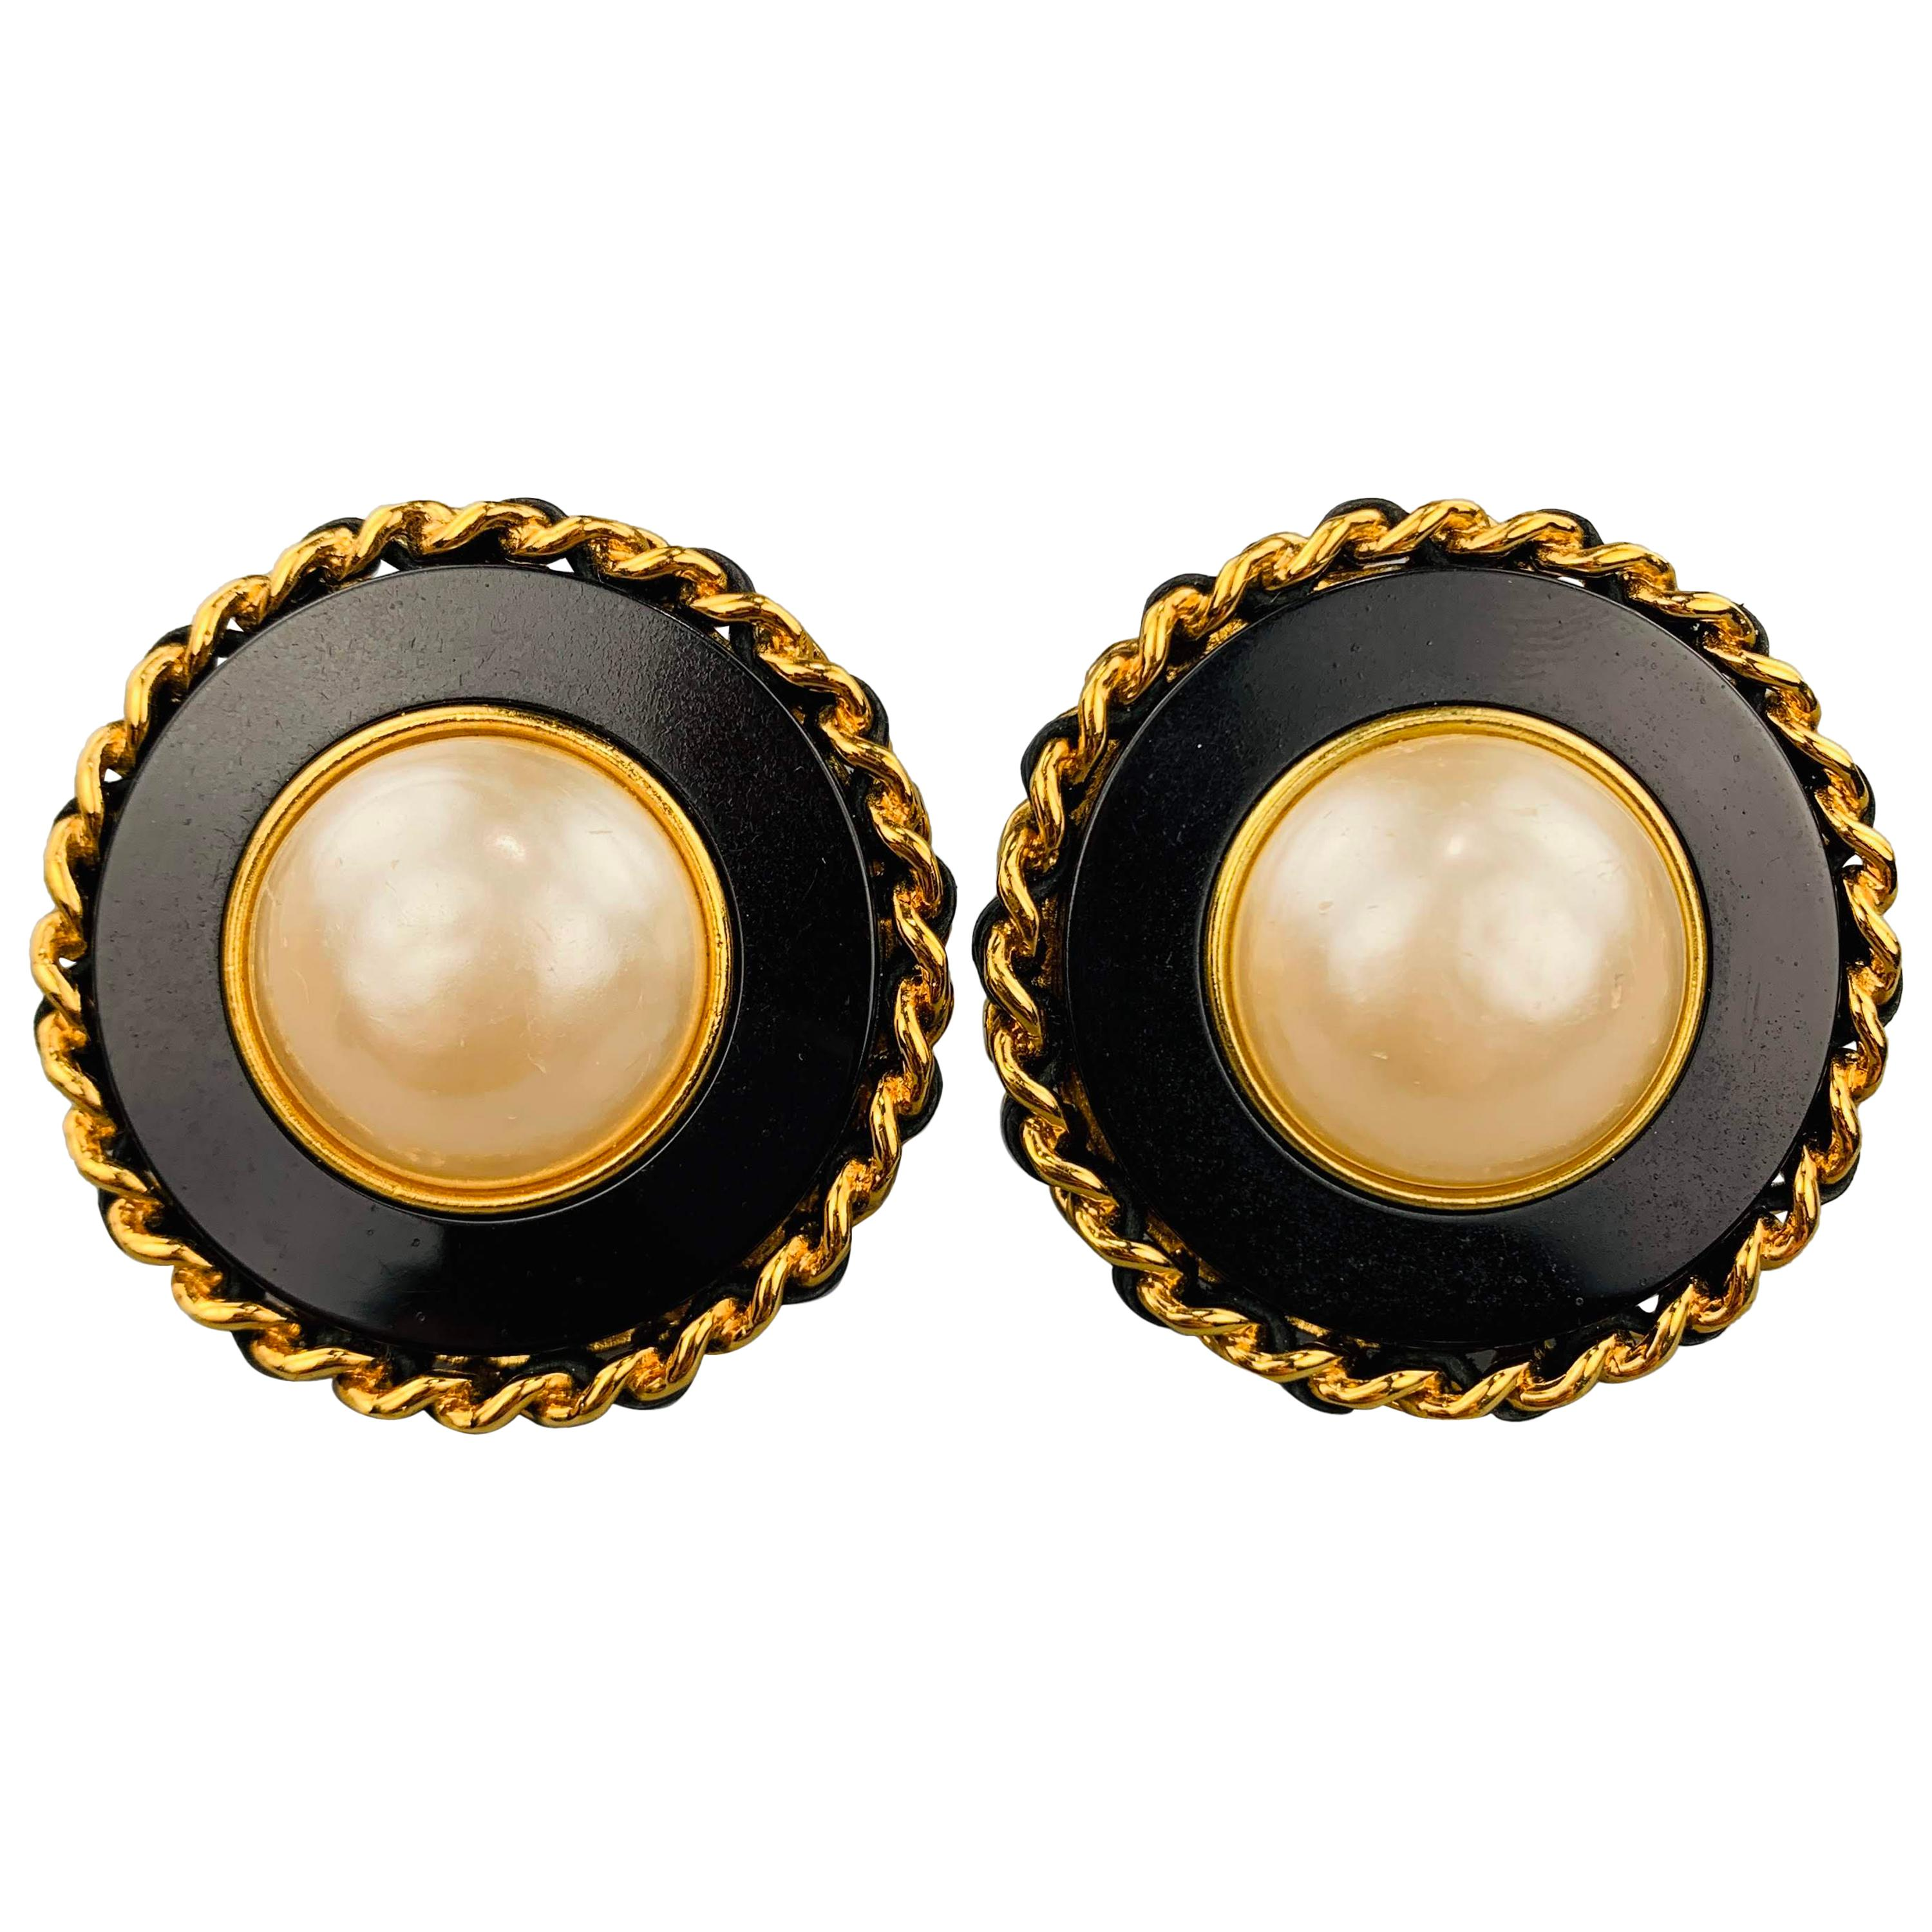 84c7b0367 Vintage Chanel Earrings - 581 For Sale at 1stdibs